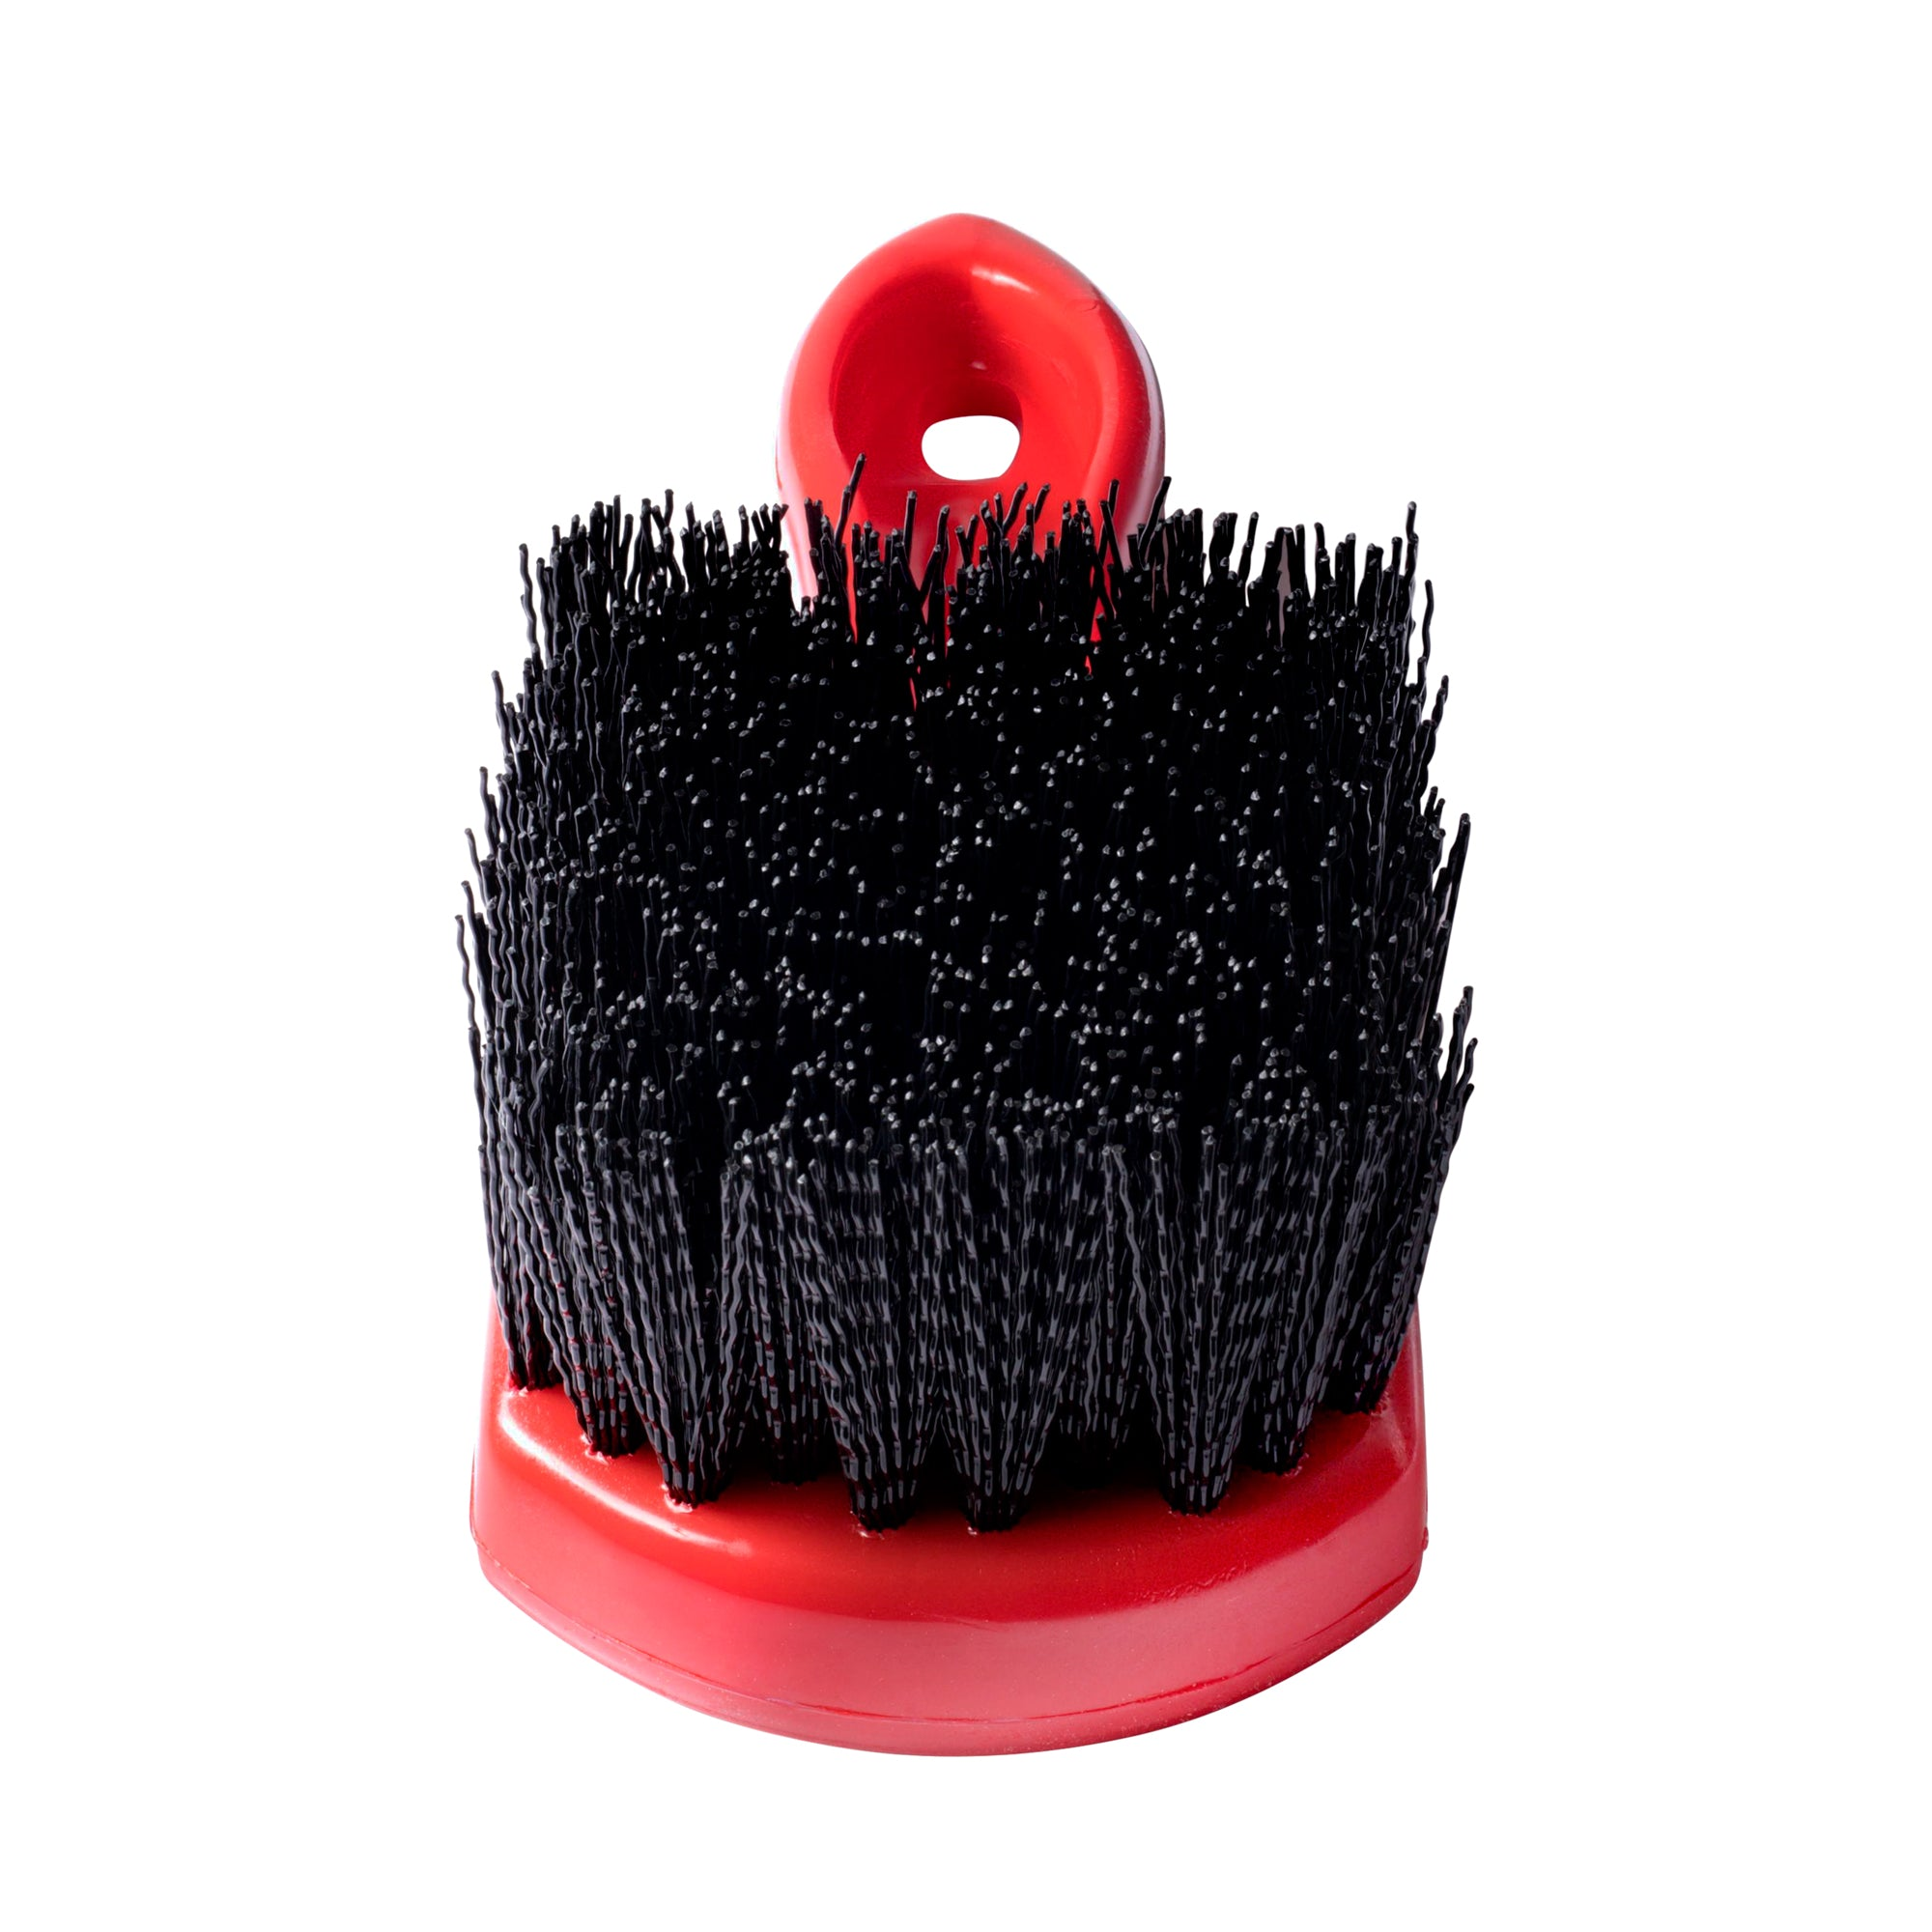 Barbecue Grill Brush W/ Nylon Bristles - Safe for Ceramic, Porcelain, Teflon, Non-Stick Grills